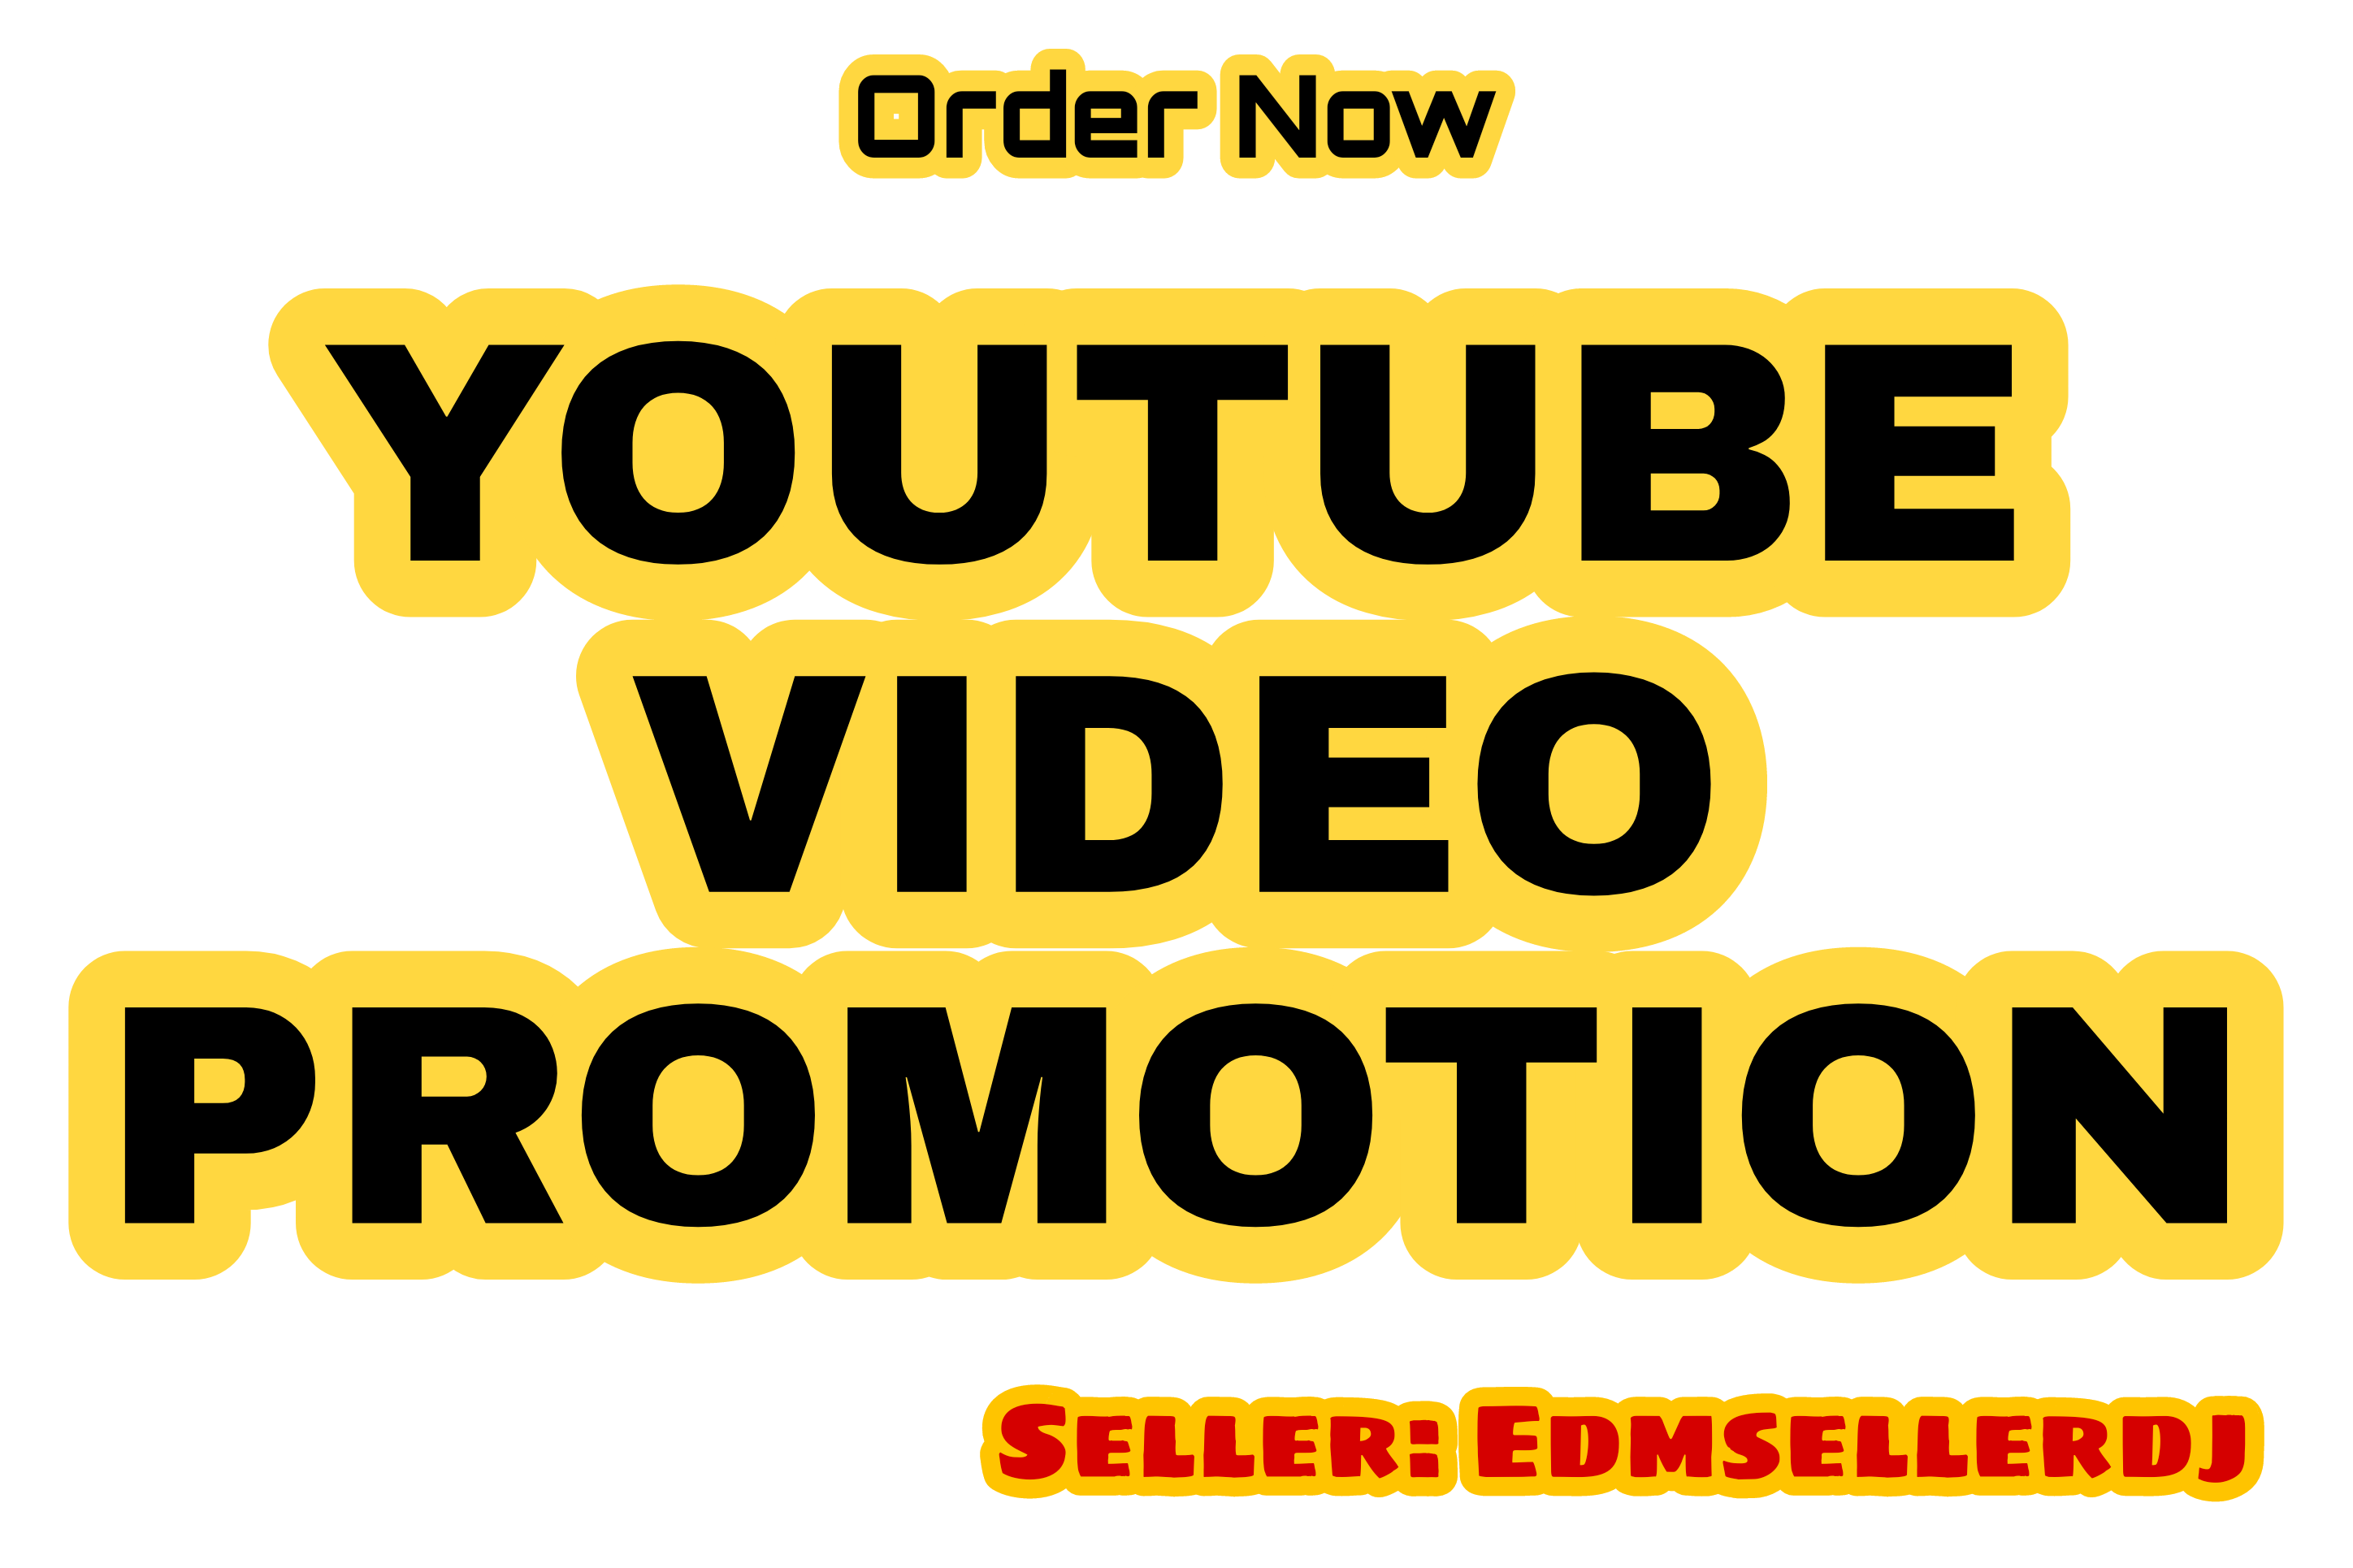 Permanent YouTube Promotion and Marketing